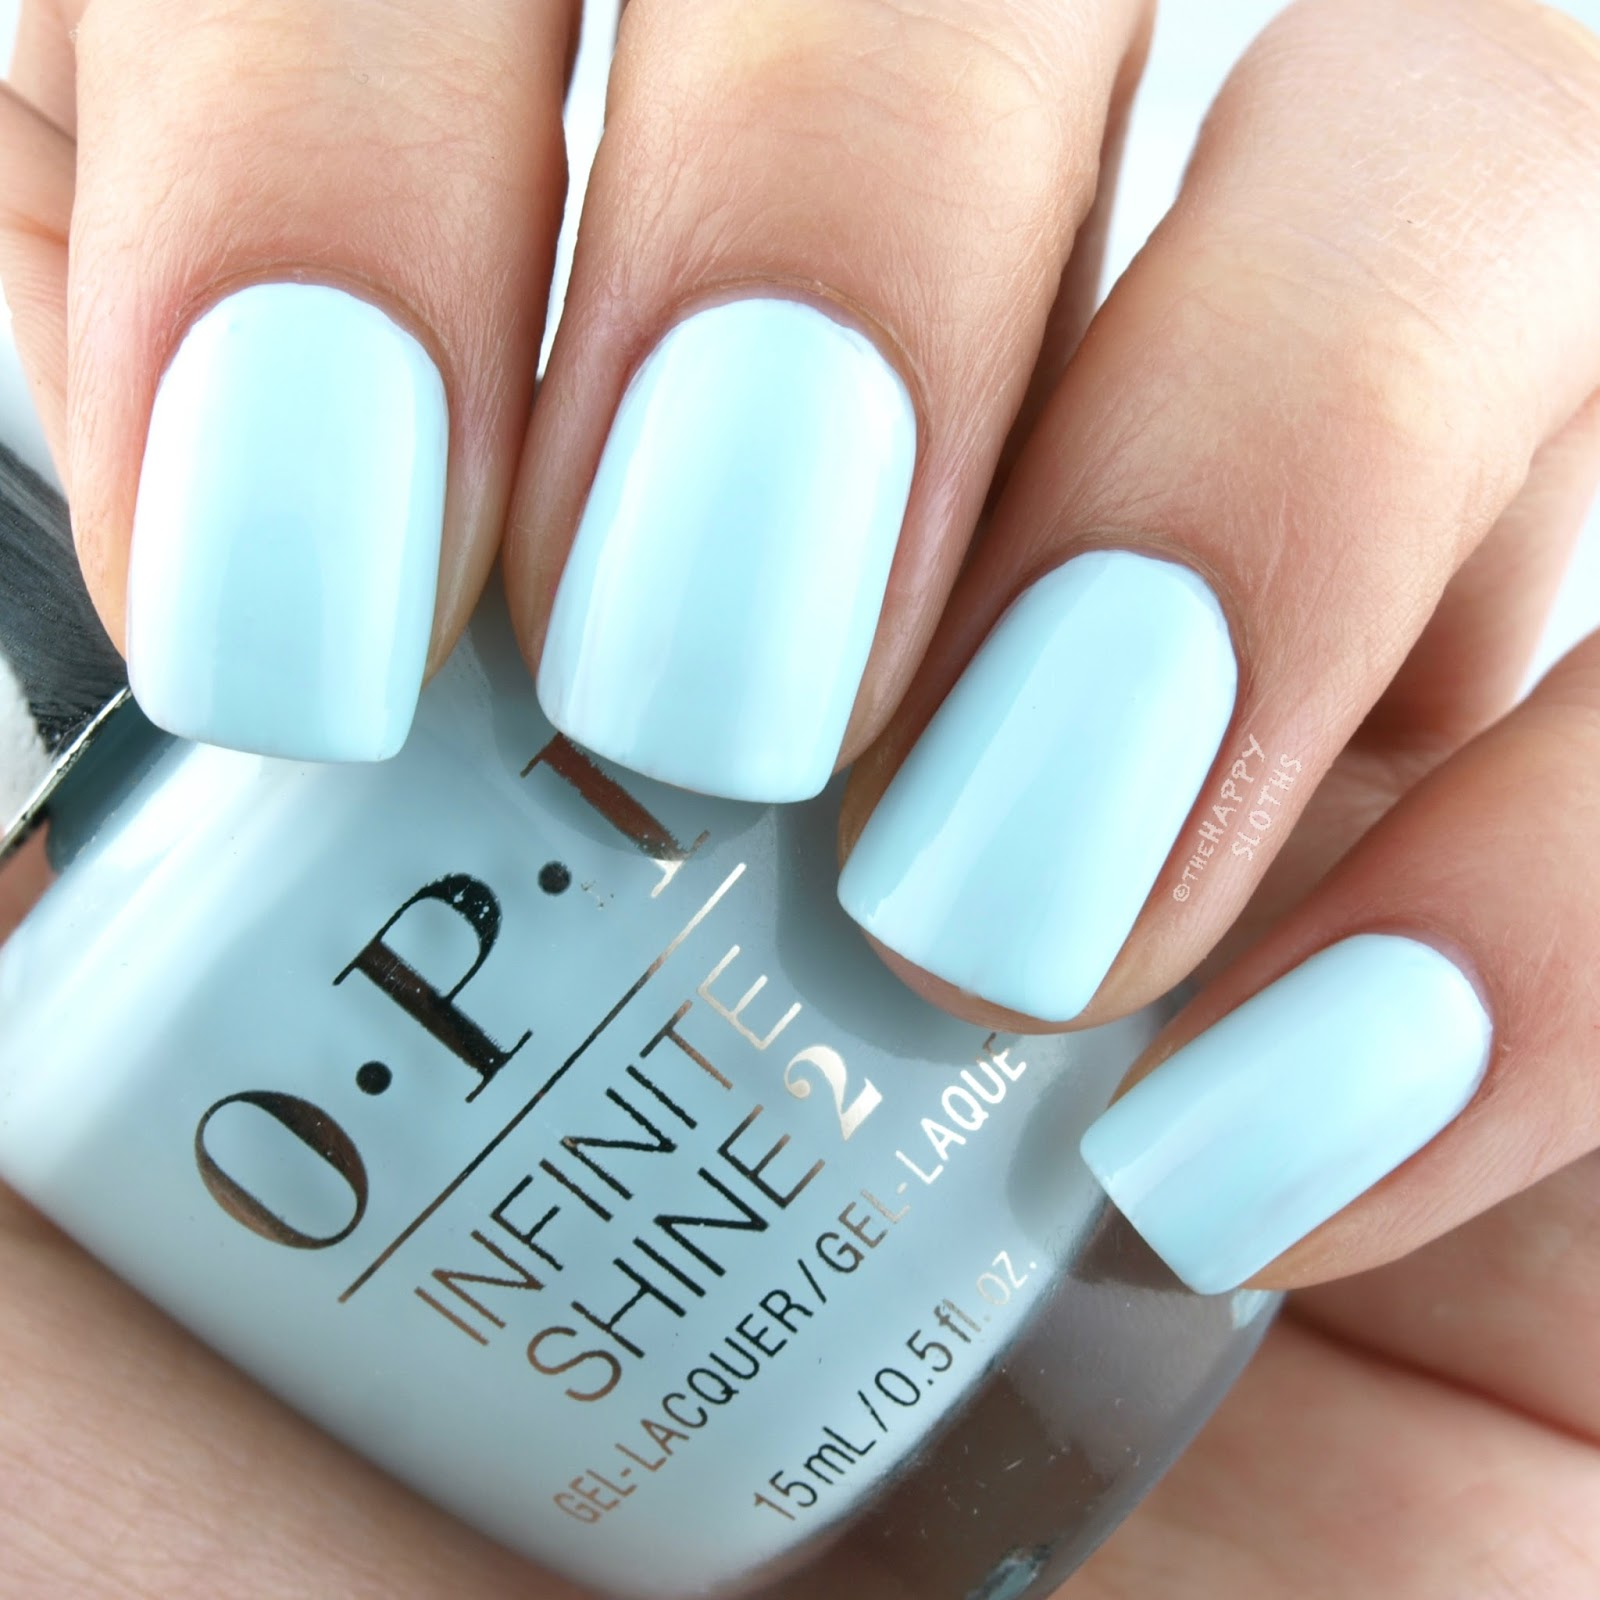 OPI Fiji Suzi Without a Paddle Swatches and Review